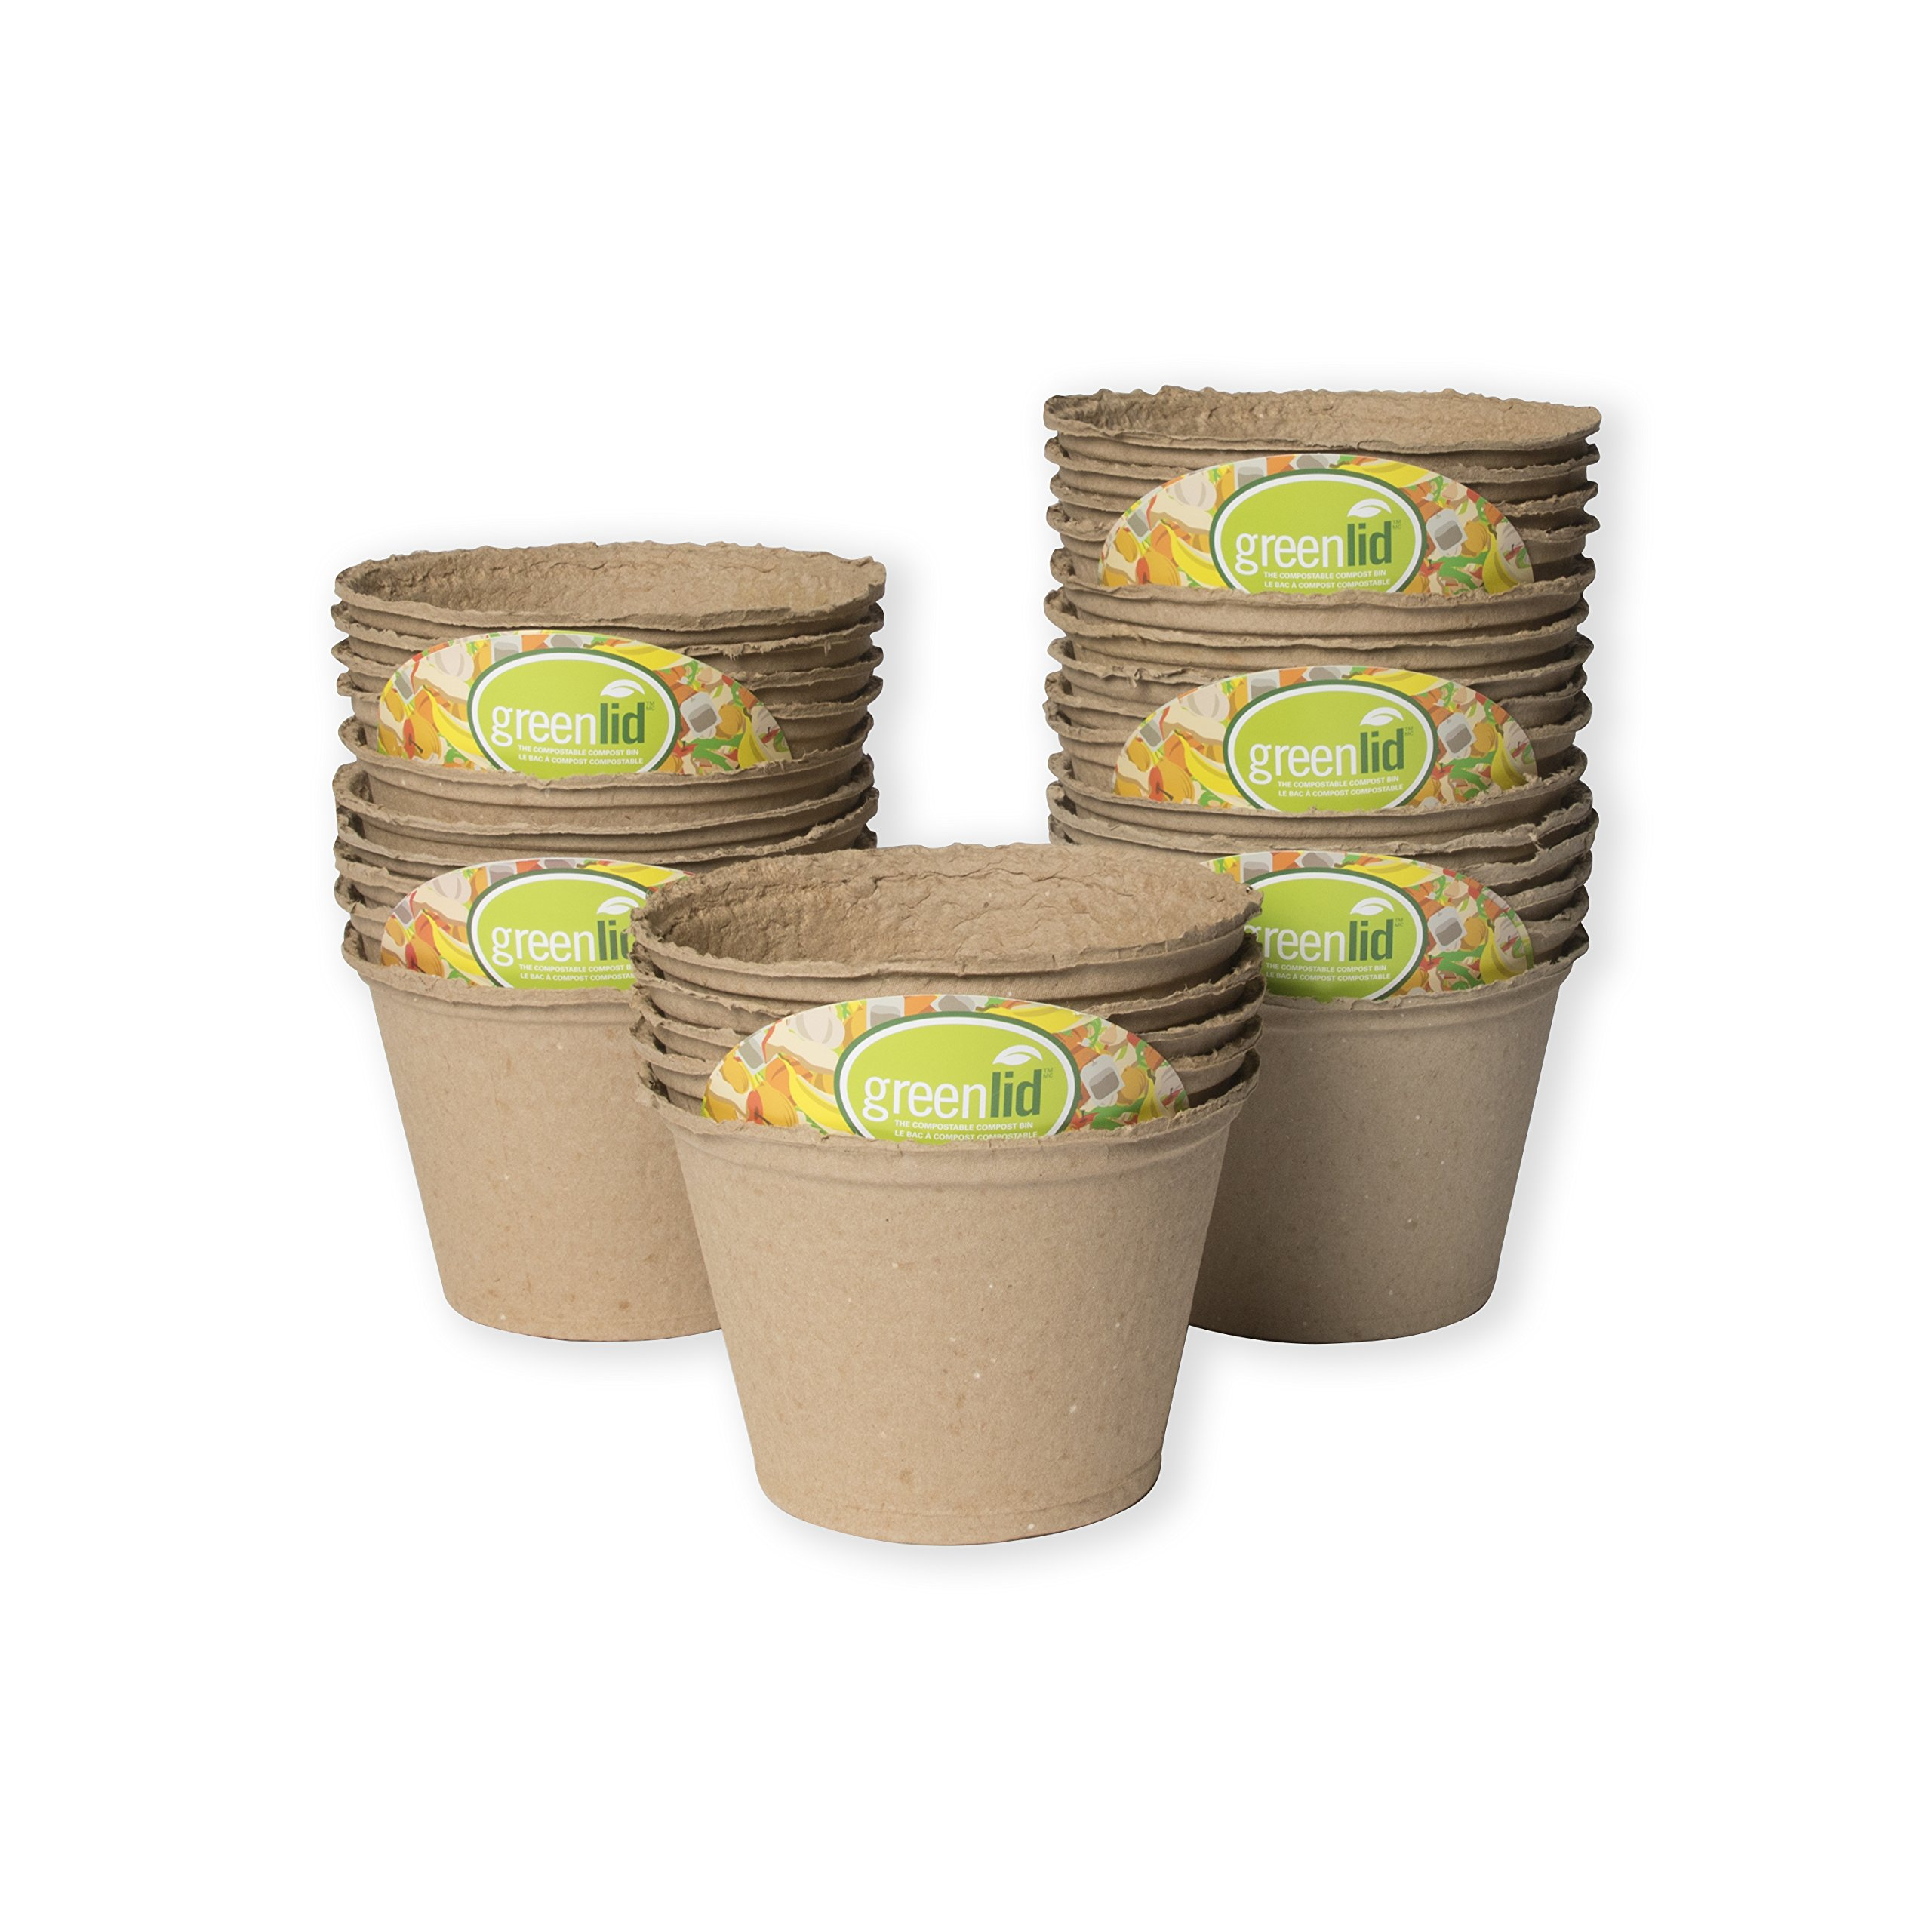 Greenlid Compostable Compost Bin - Refill Kit (30 Pack)